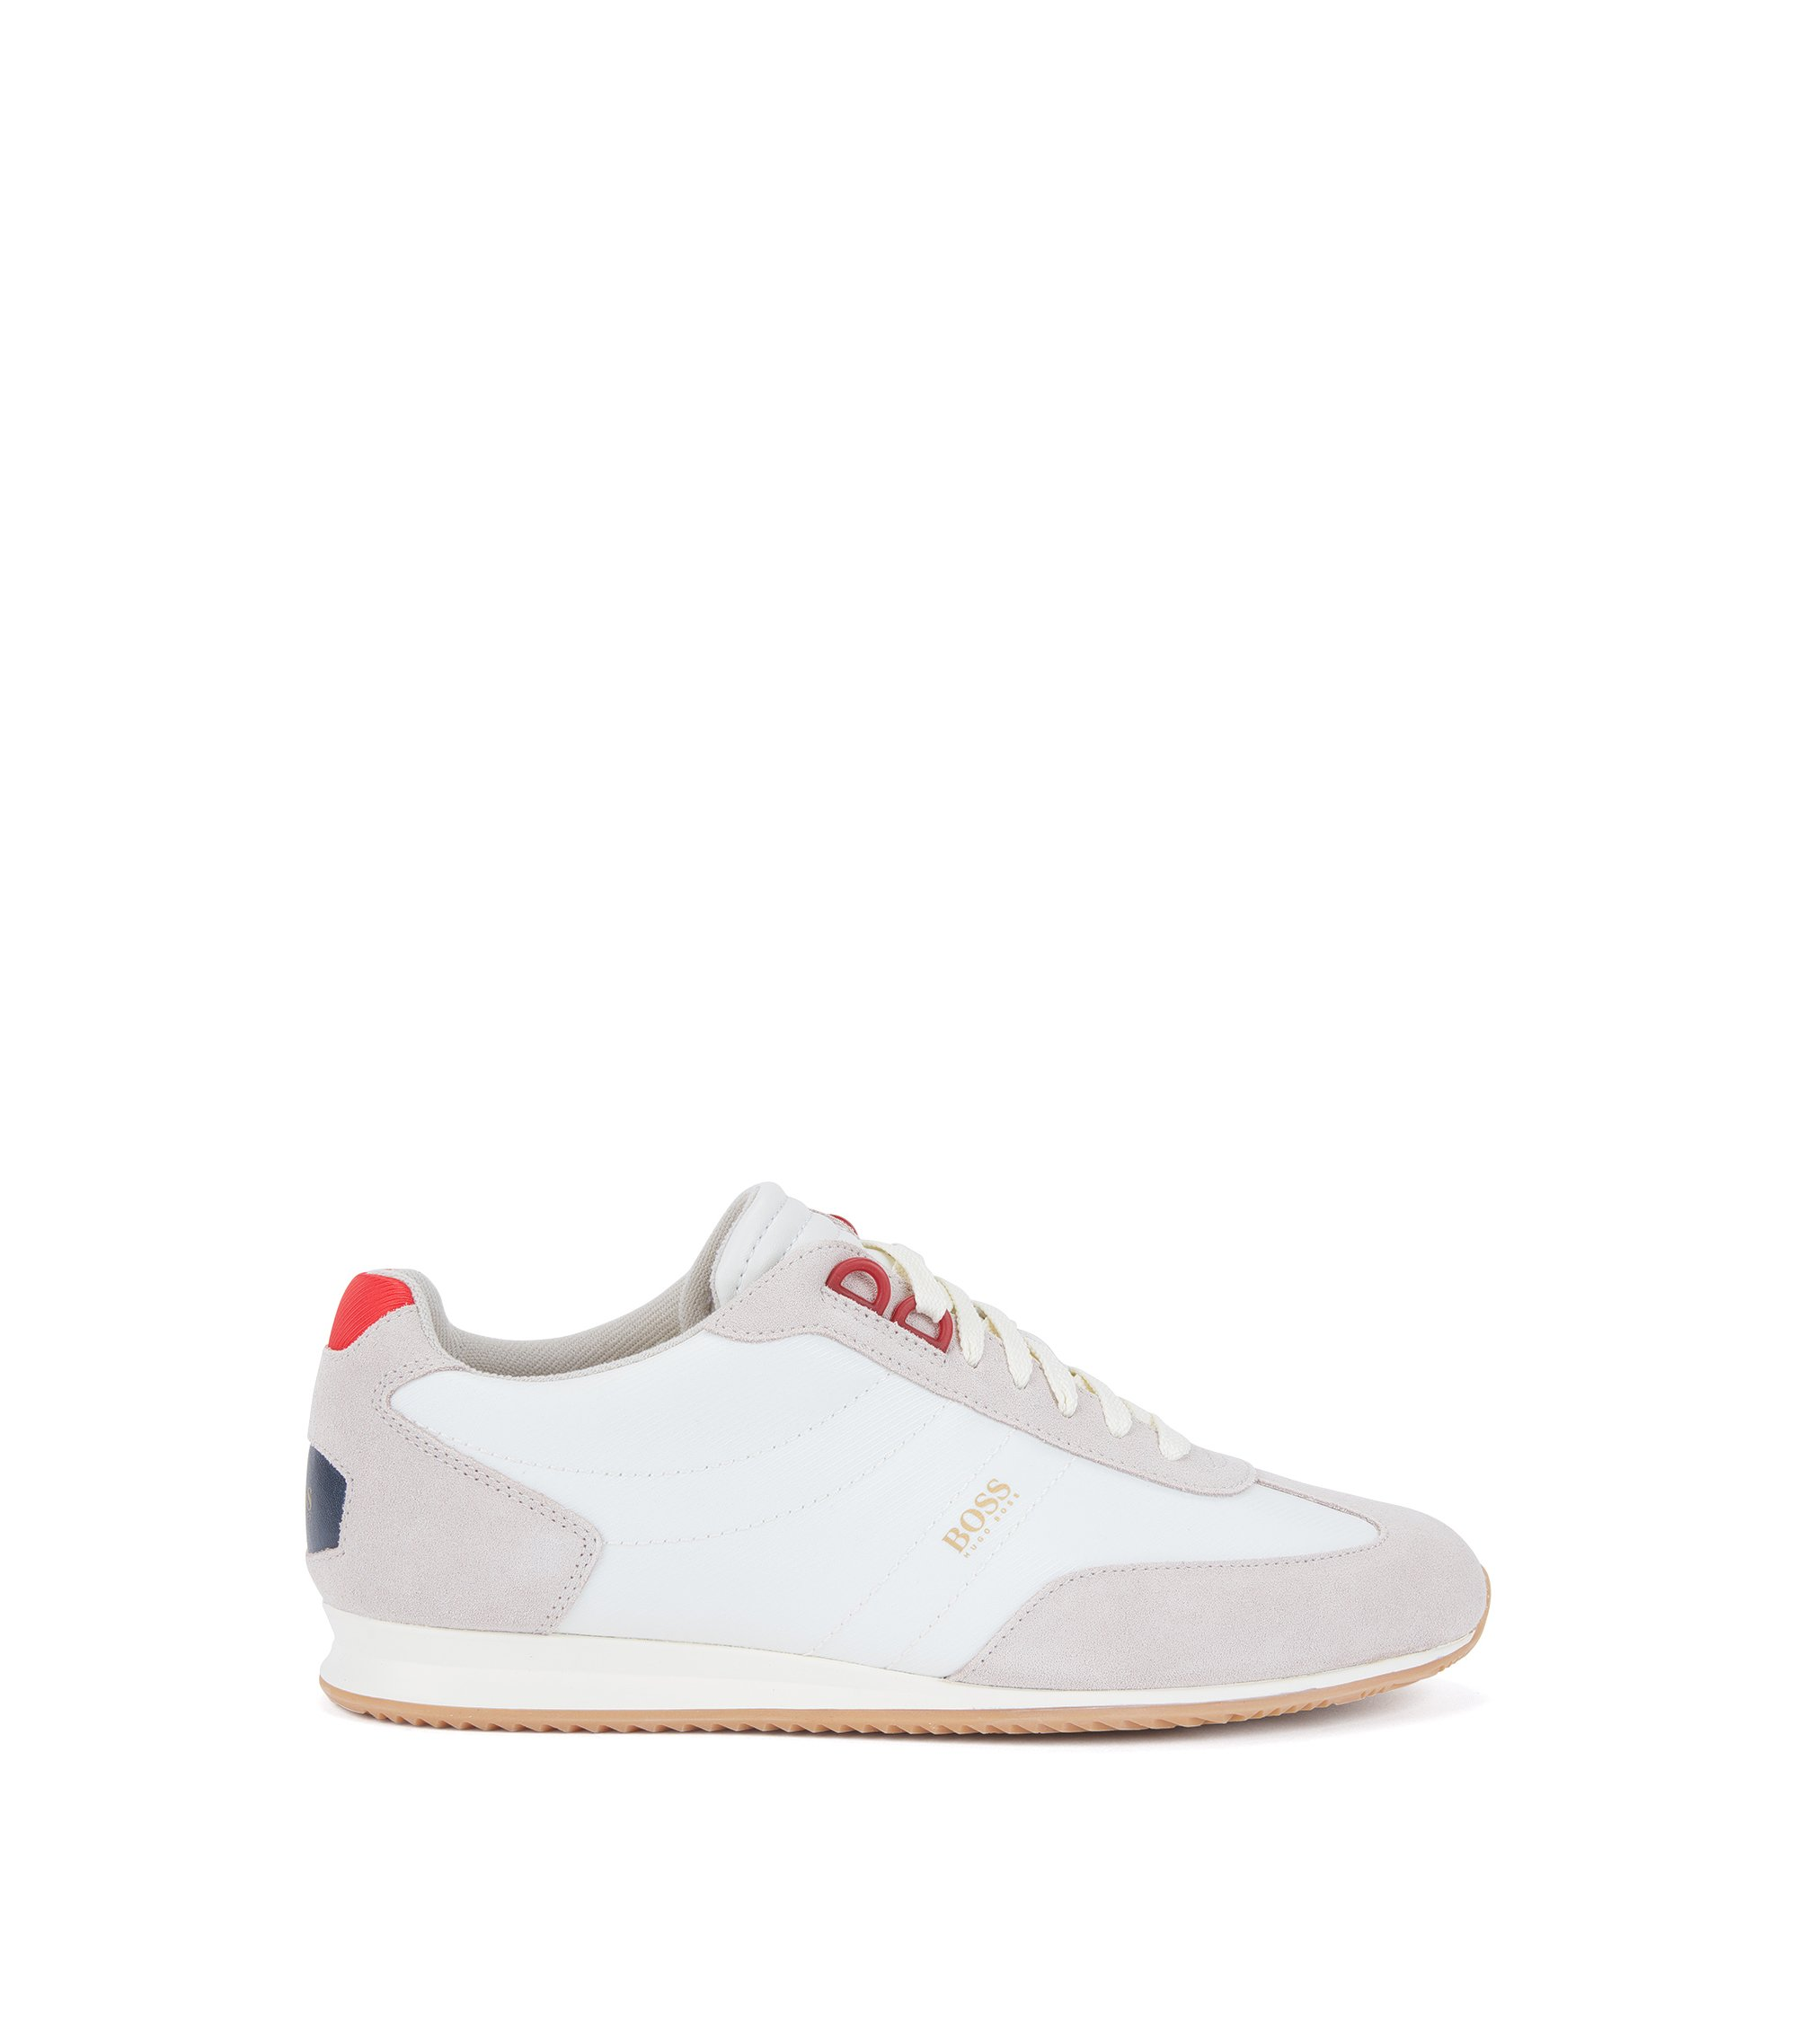 Suede & Nylon Sneaker | Orland Lowp Sdny, Open White